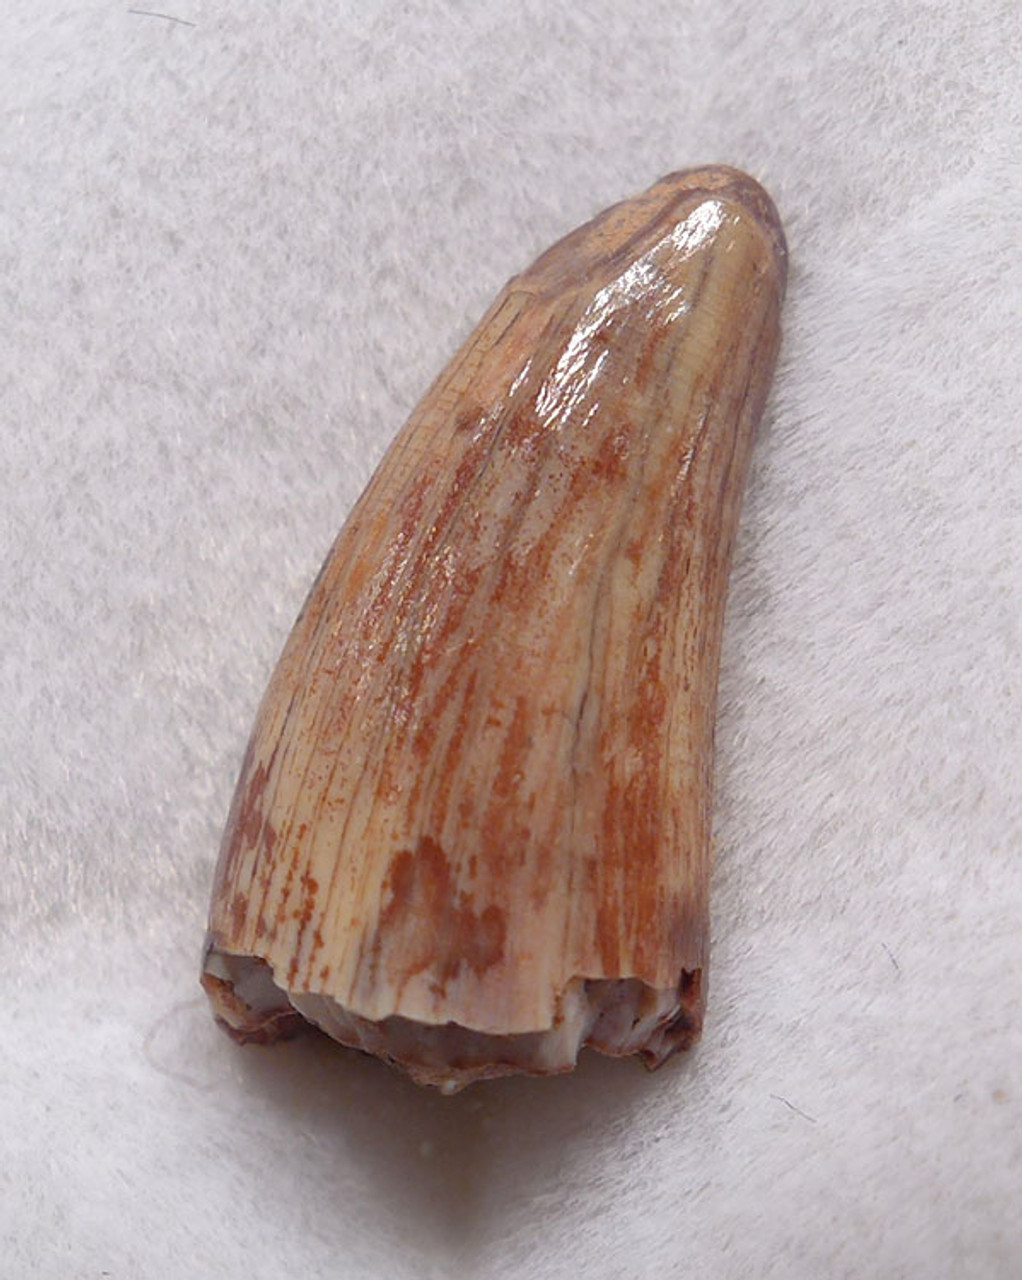 DT12-0043 - TRIASSIC-ERA RUTIODON PHYTOSAUR TOOTH IN FINEST PRESERVATION